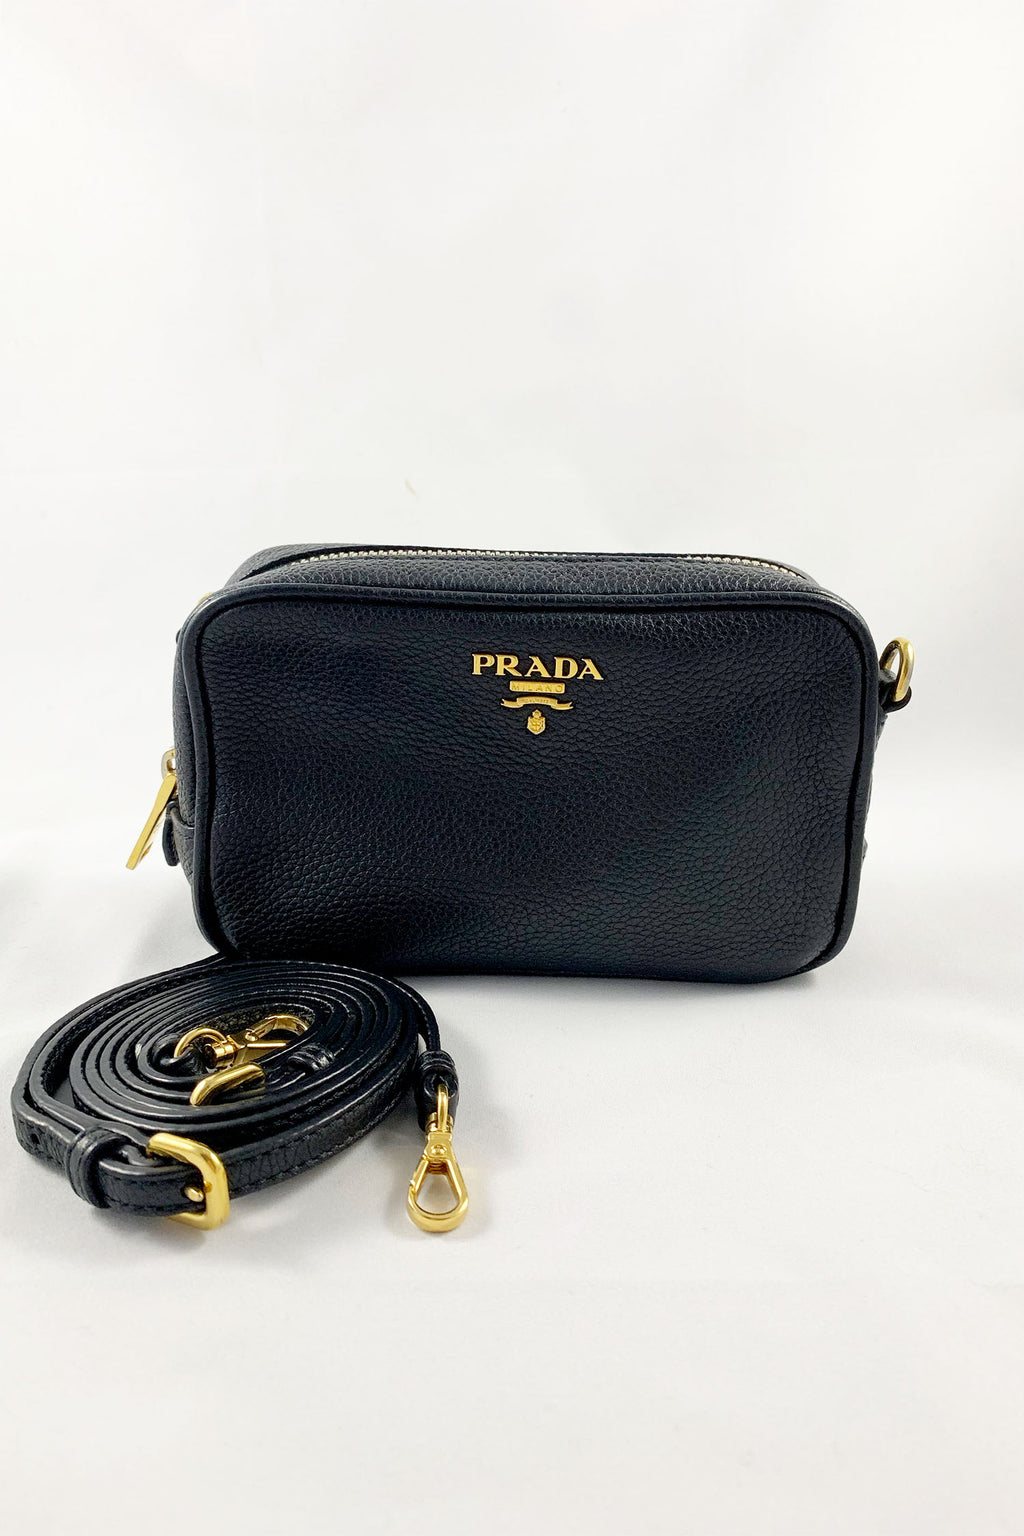 Prada Black Vitello Daino Mini Camera Bag